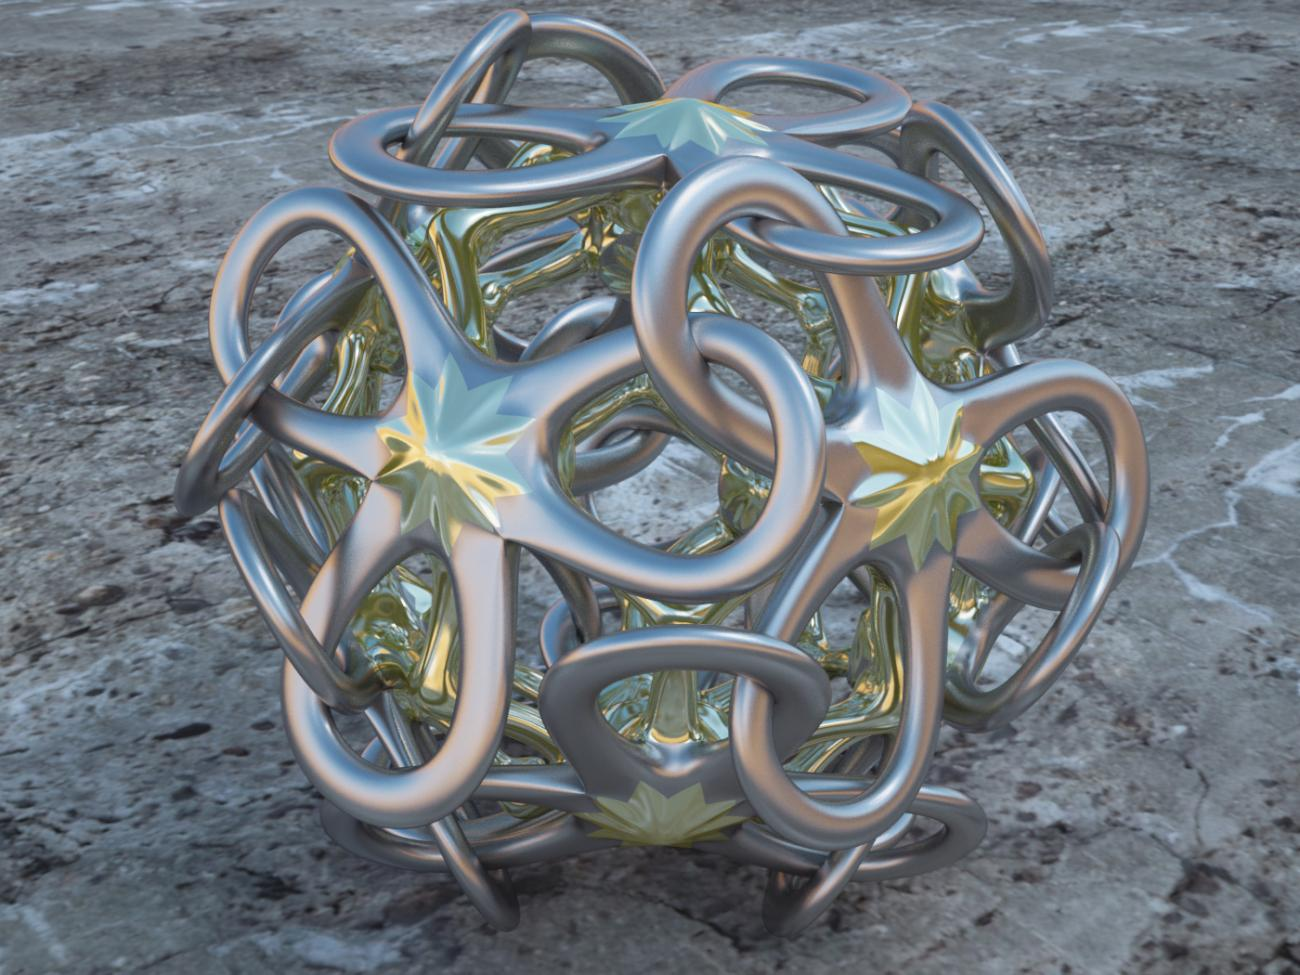 Interlocked Polyhedral Petals